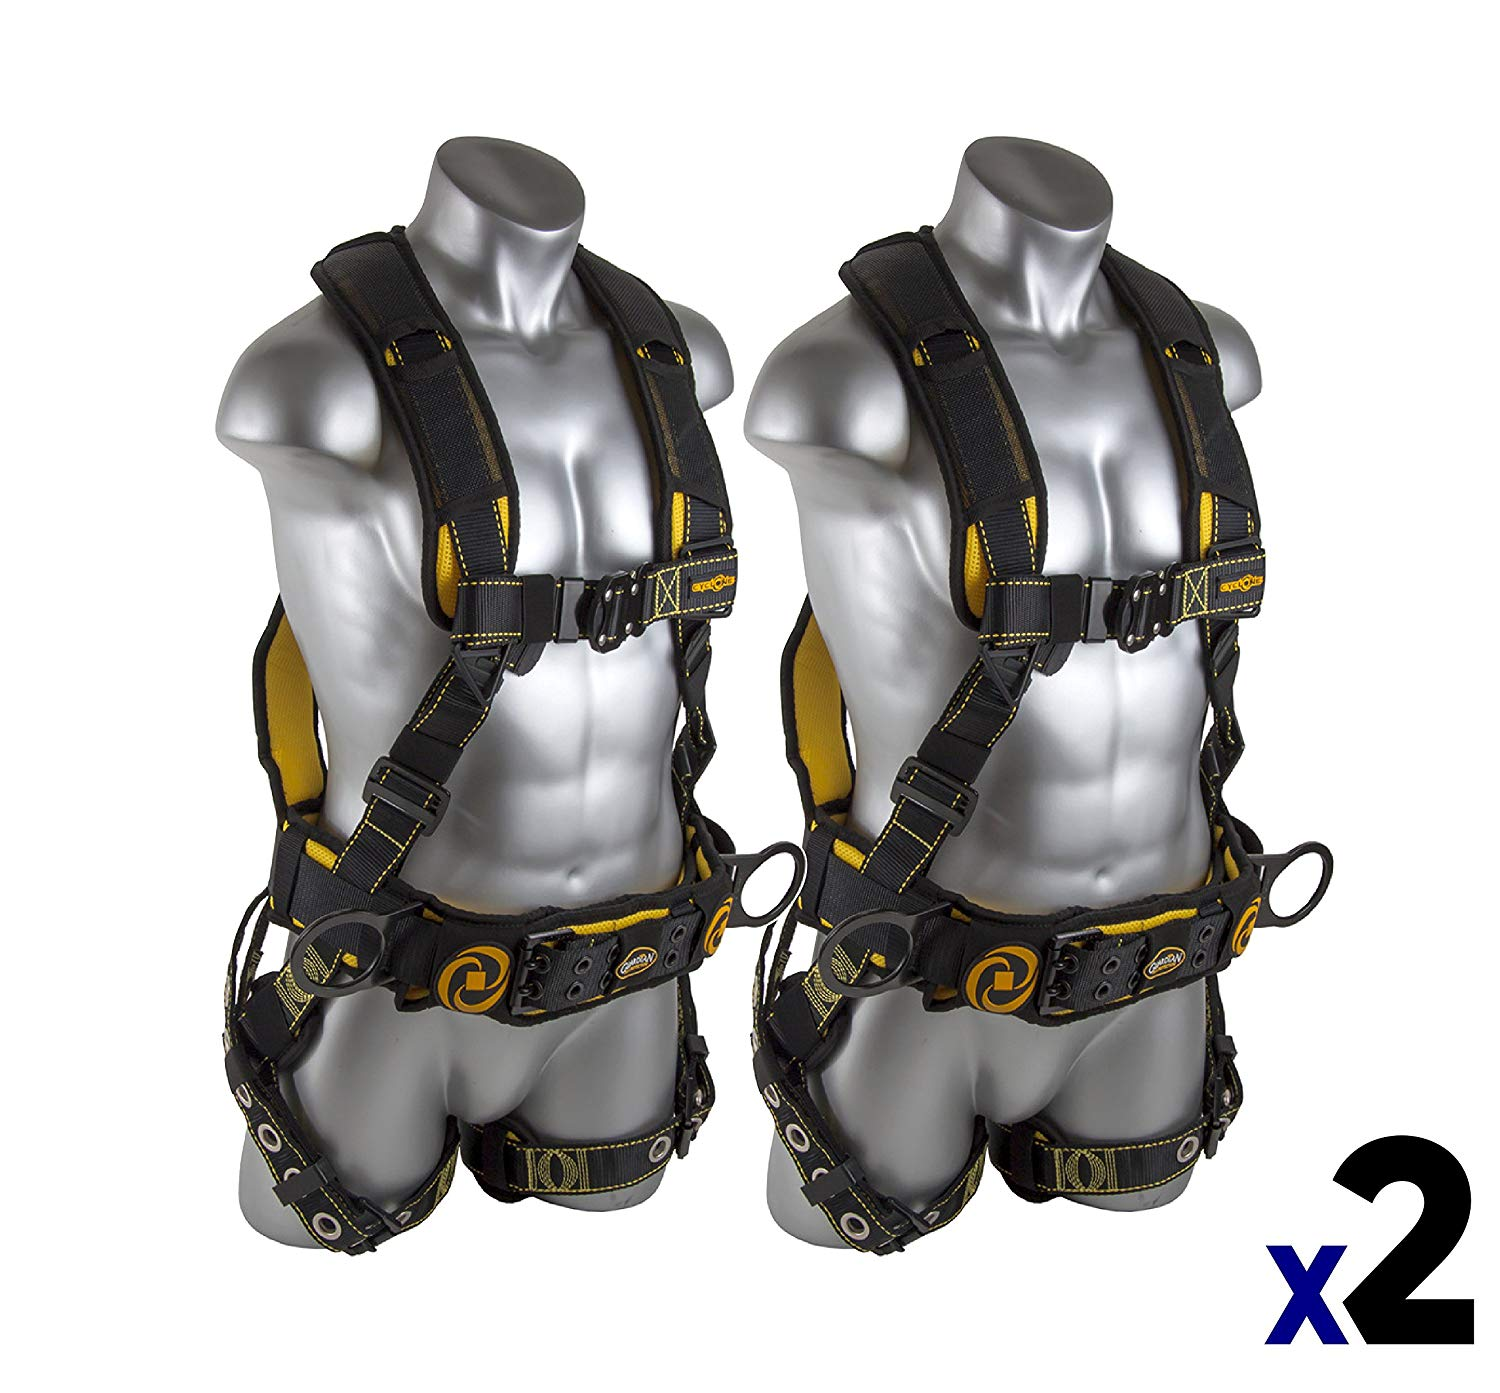 Guardian Fall Protection 21030 Cyclone Construction Harness with QC Chest/TB Leg/TB Waist Belt/Side D-Rings, Black/Yellow (2 Pack)